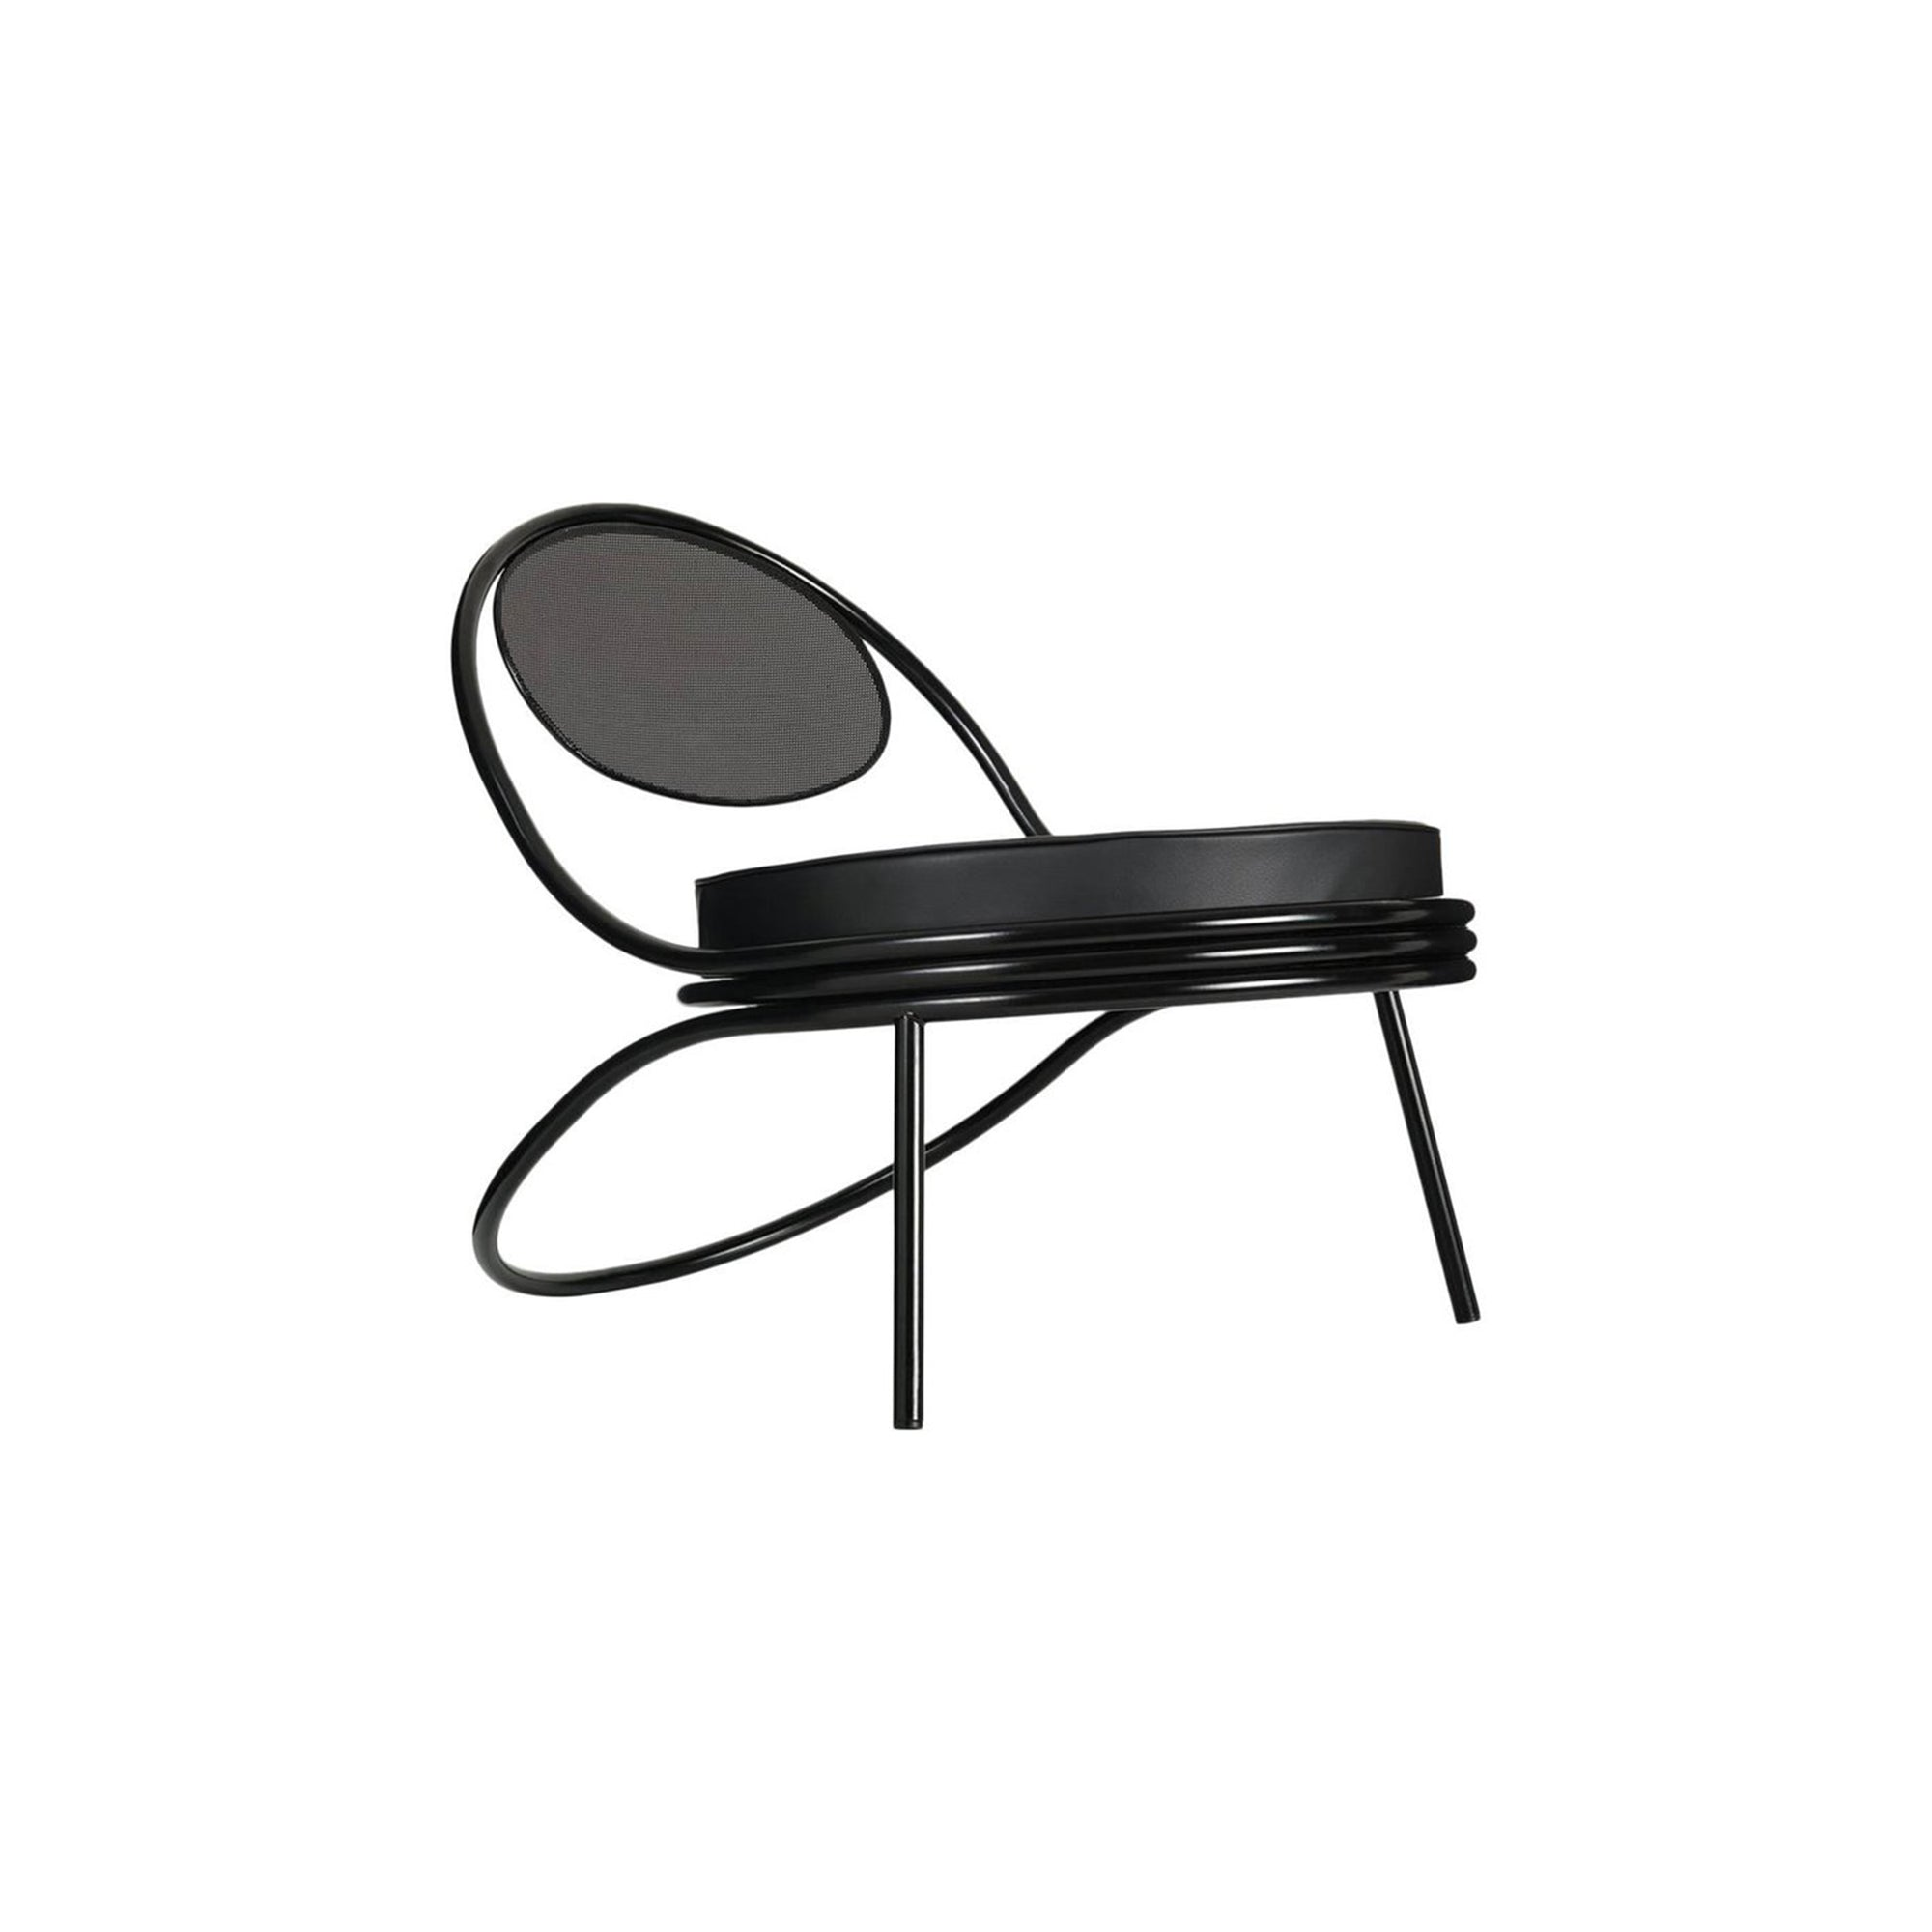 COPACABANA LOUNGE CHAIR, Chairs//Fauteuils, Gubi  - SORS